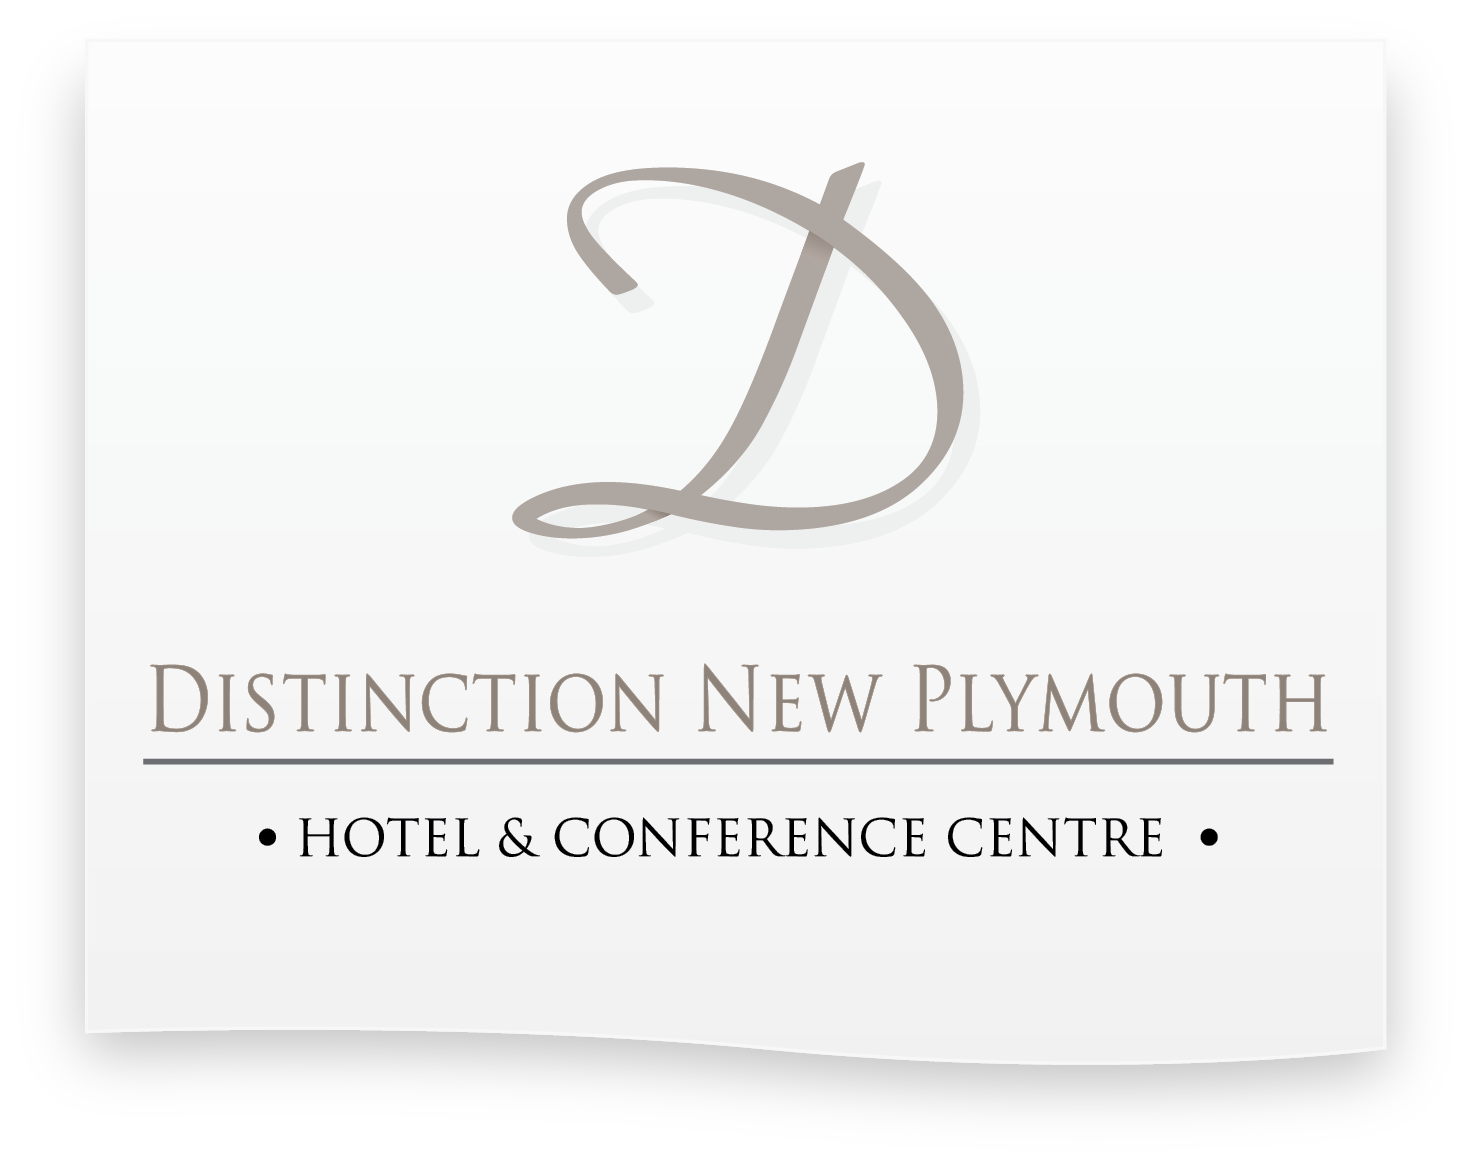 Distinction New Plymouth Hotel & Conference Centre